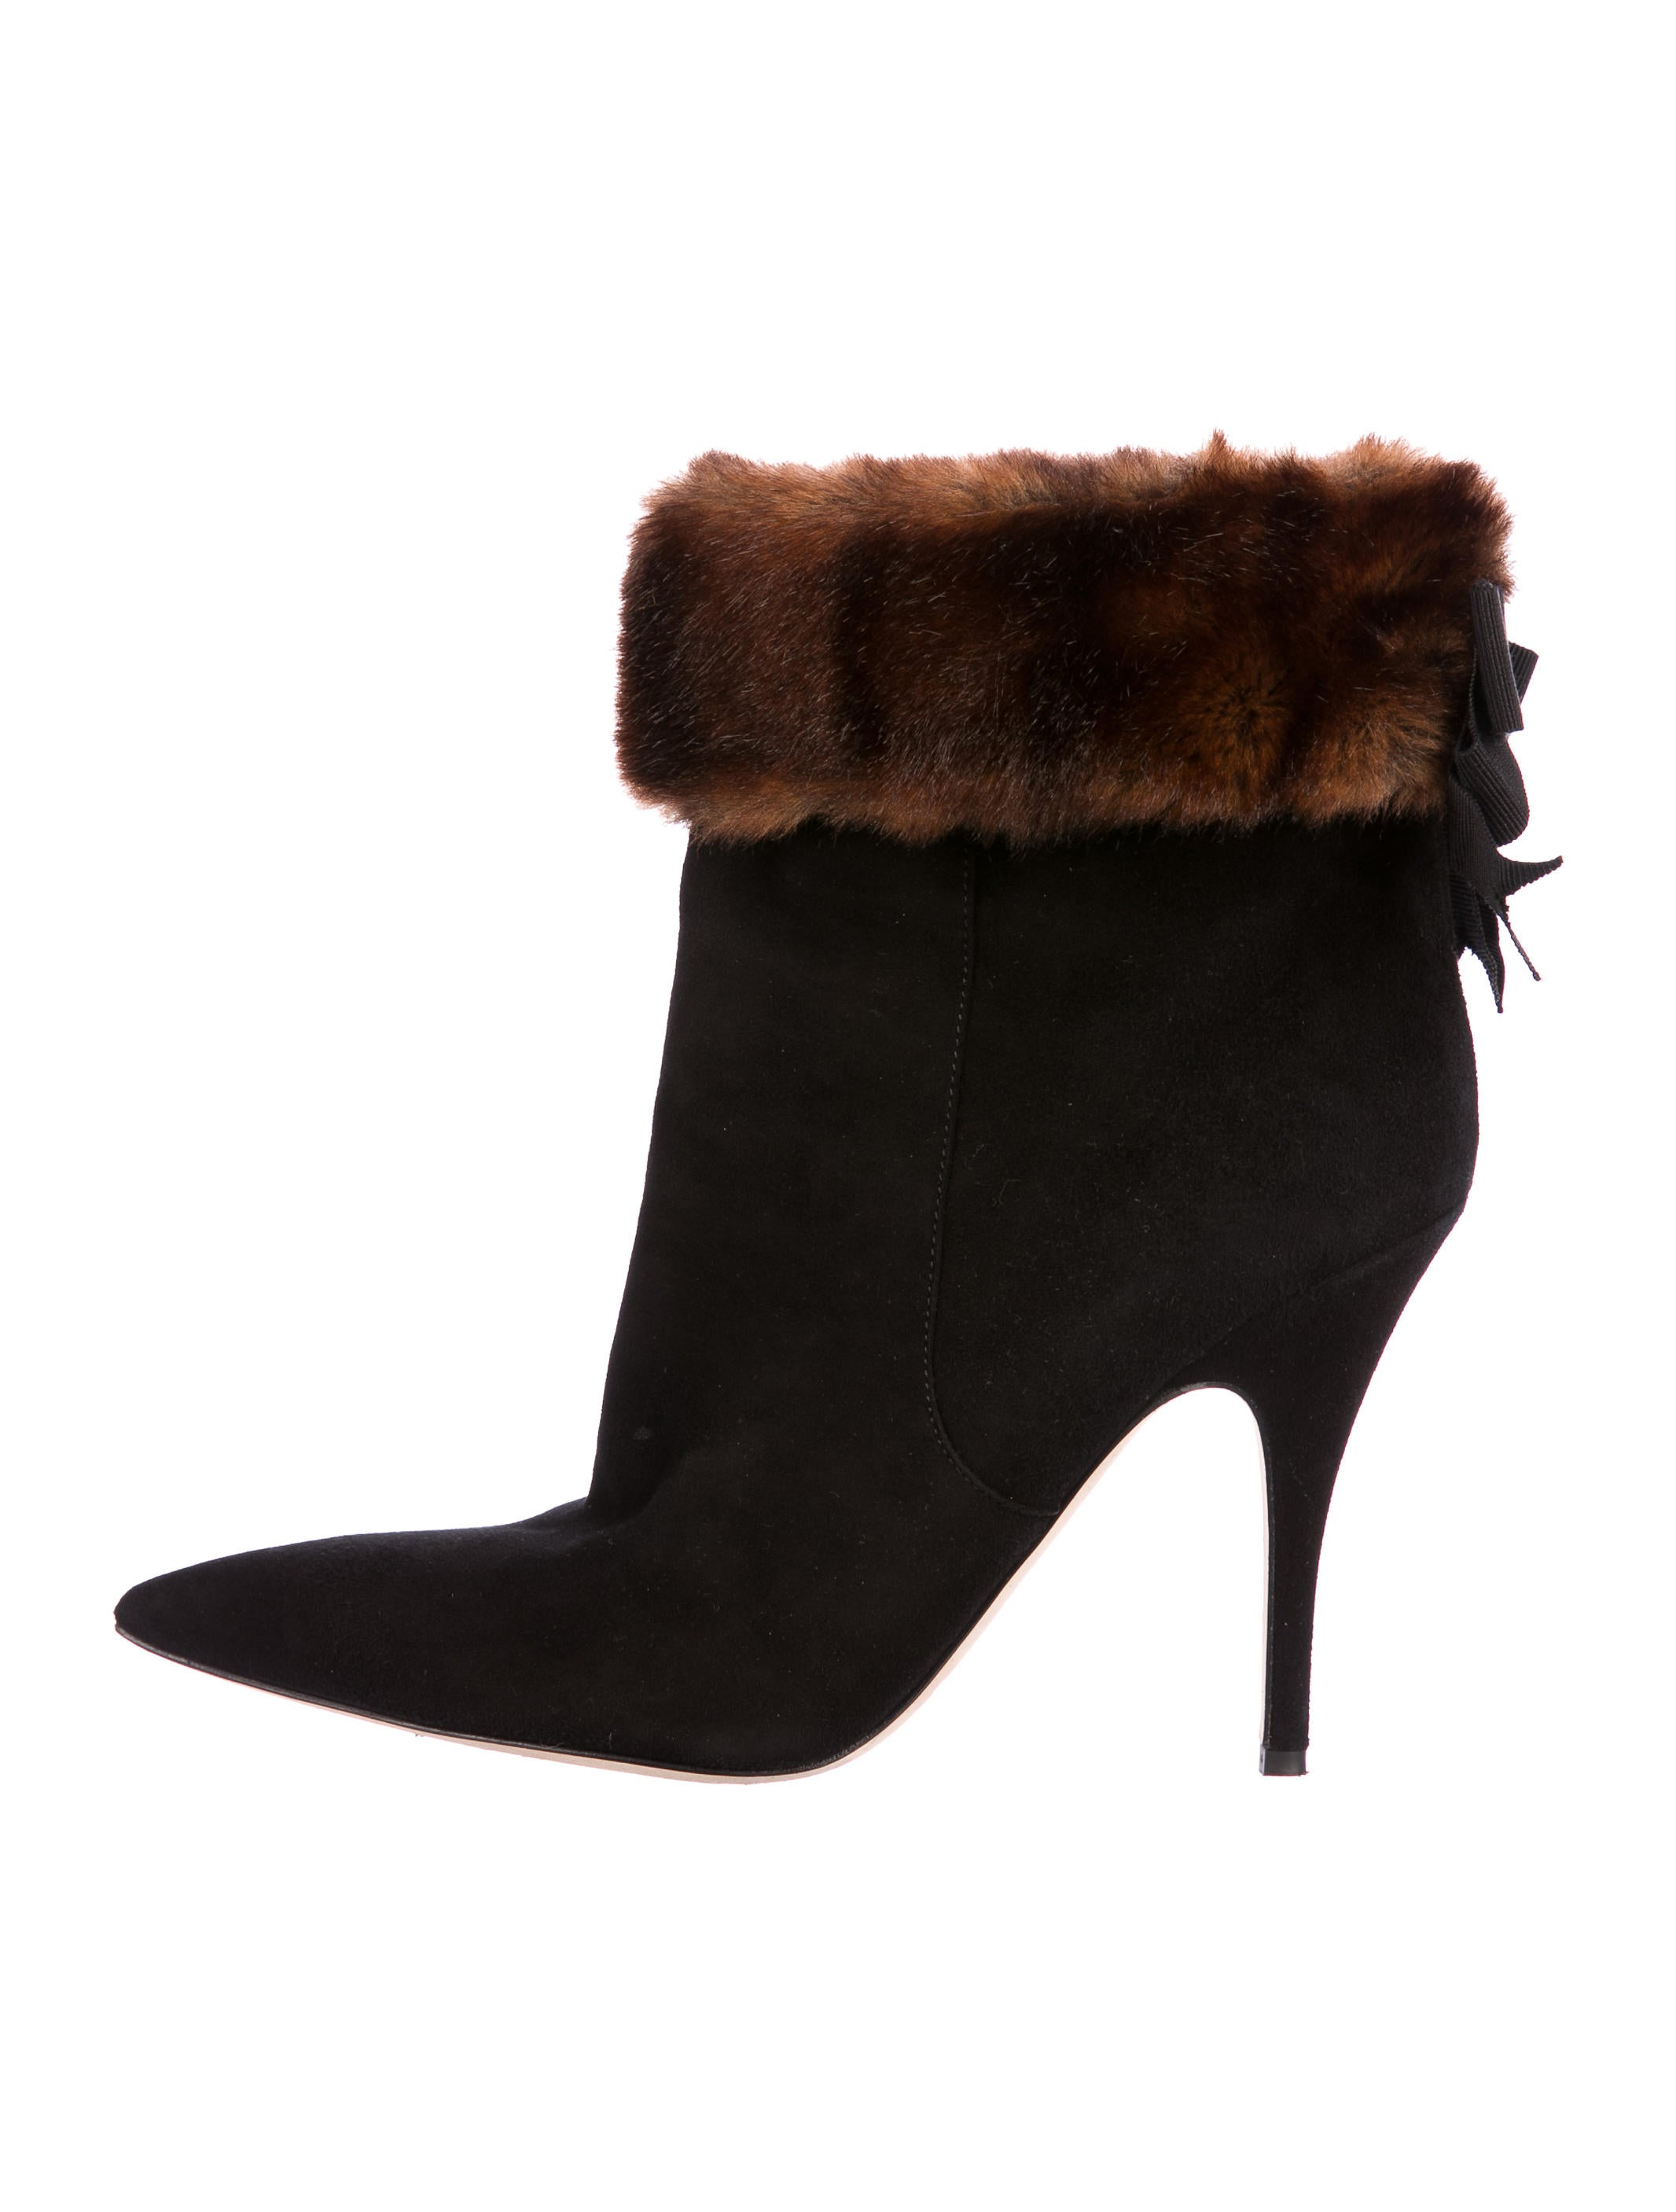 Kate Spade New York Suede Leigh Booties newest online cheap sale low cost clearance discounts discount genuine RzKcAKpsG